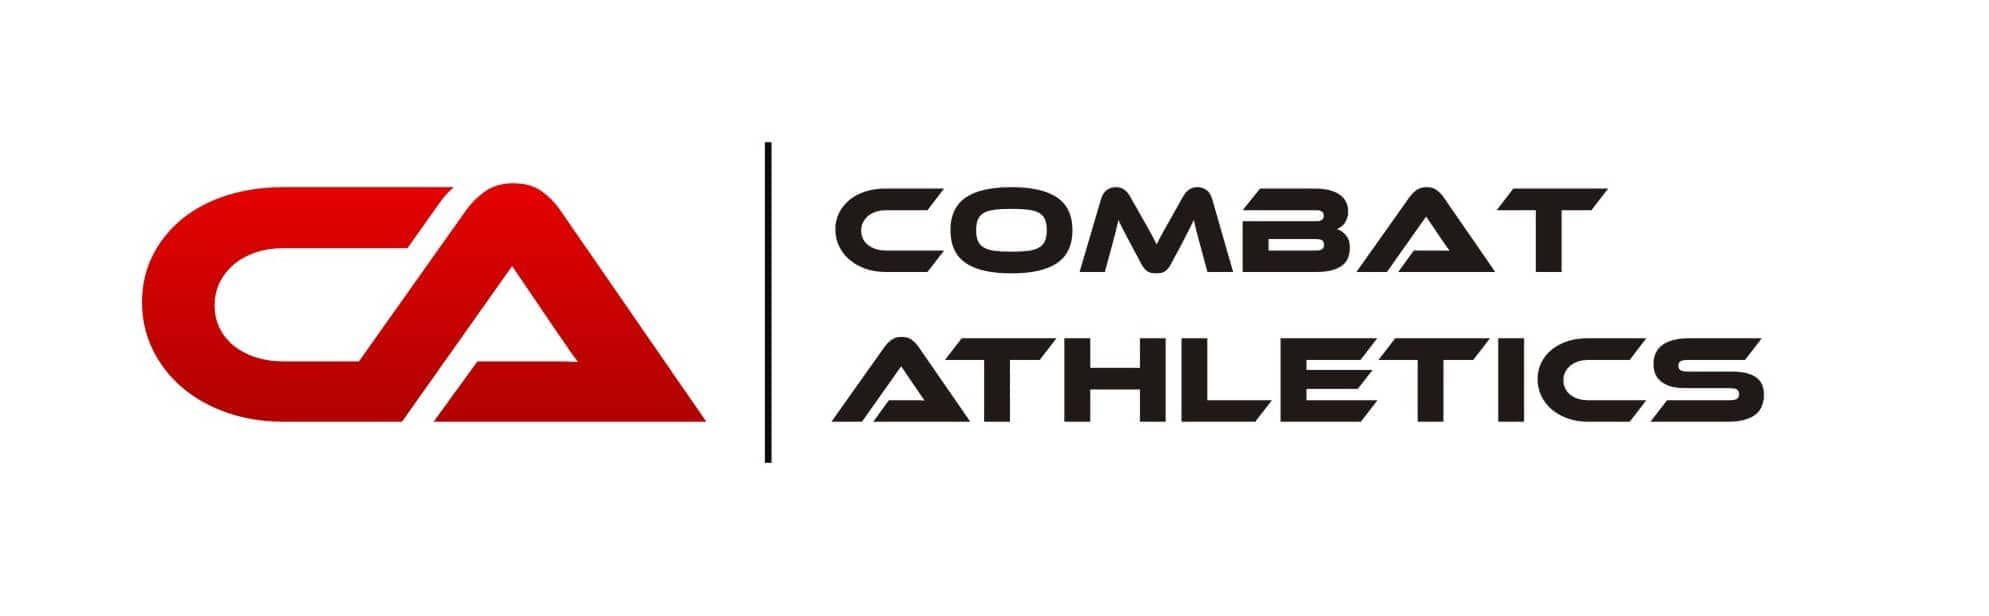 Combat Athletics